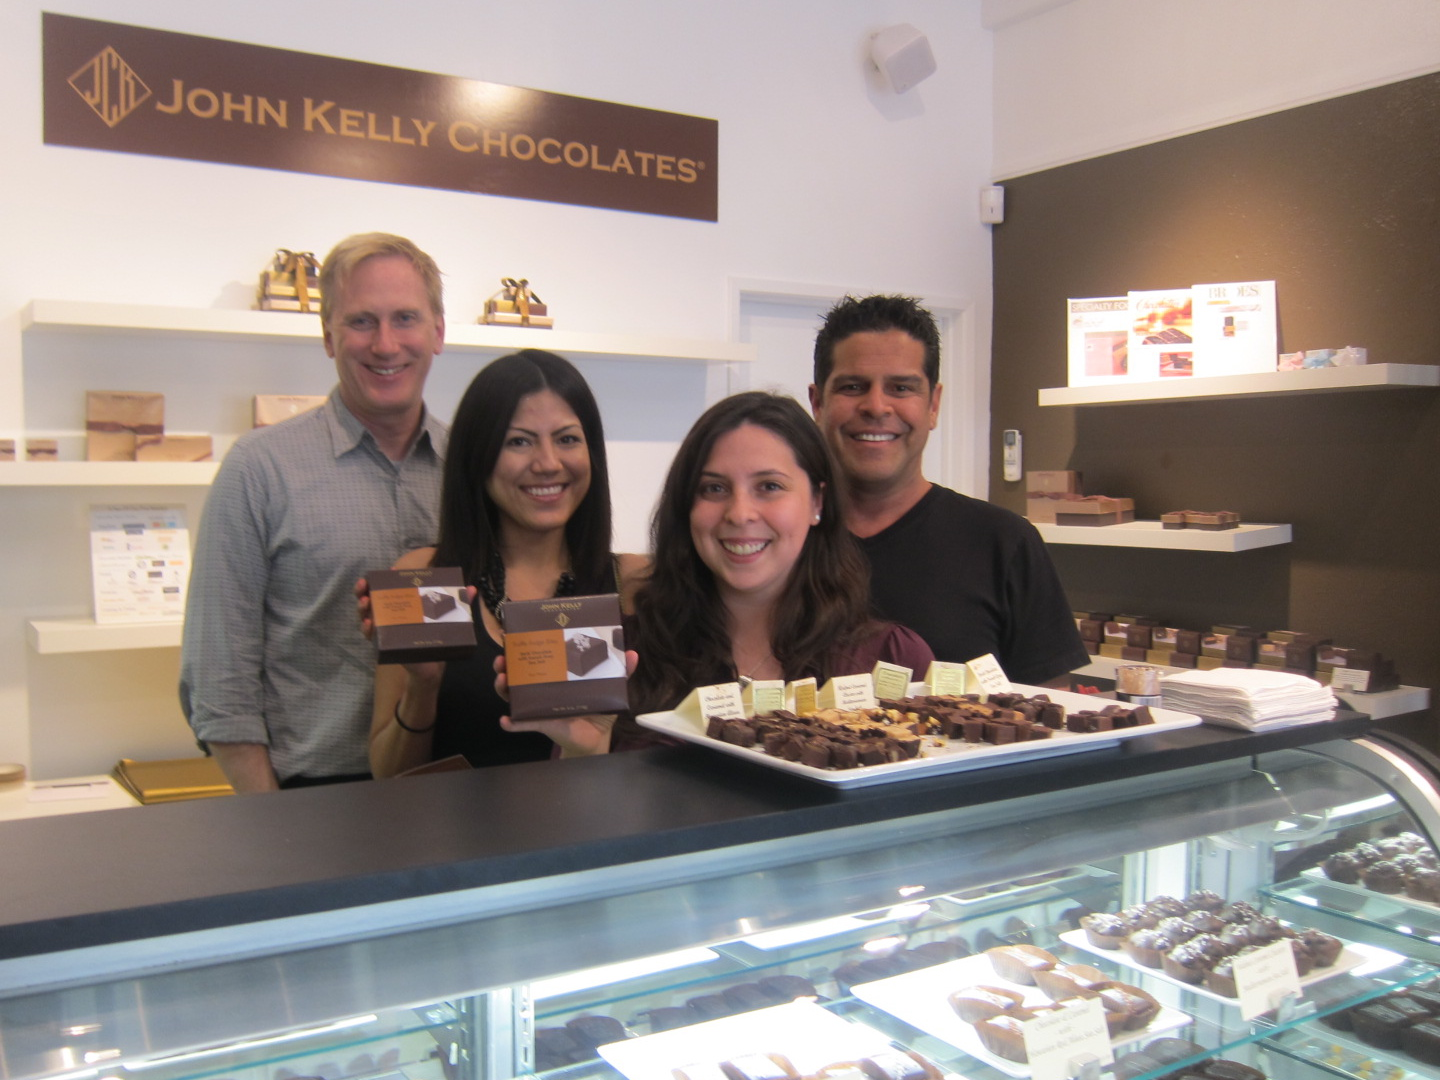 Oh My Fudge God: John Kelly Chocolates | uncouth gourmands' blog